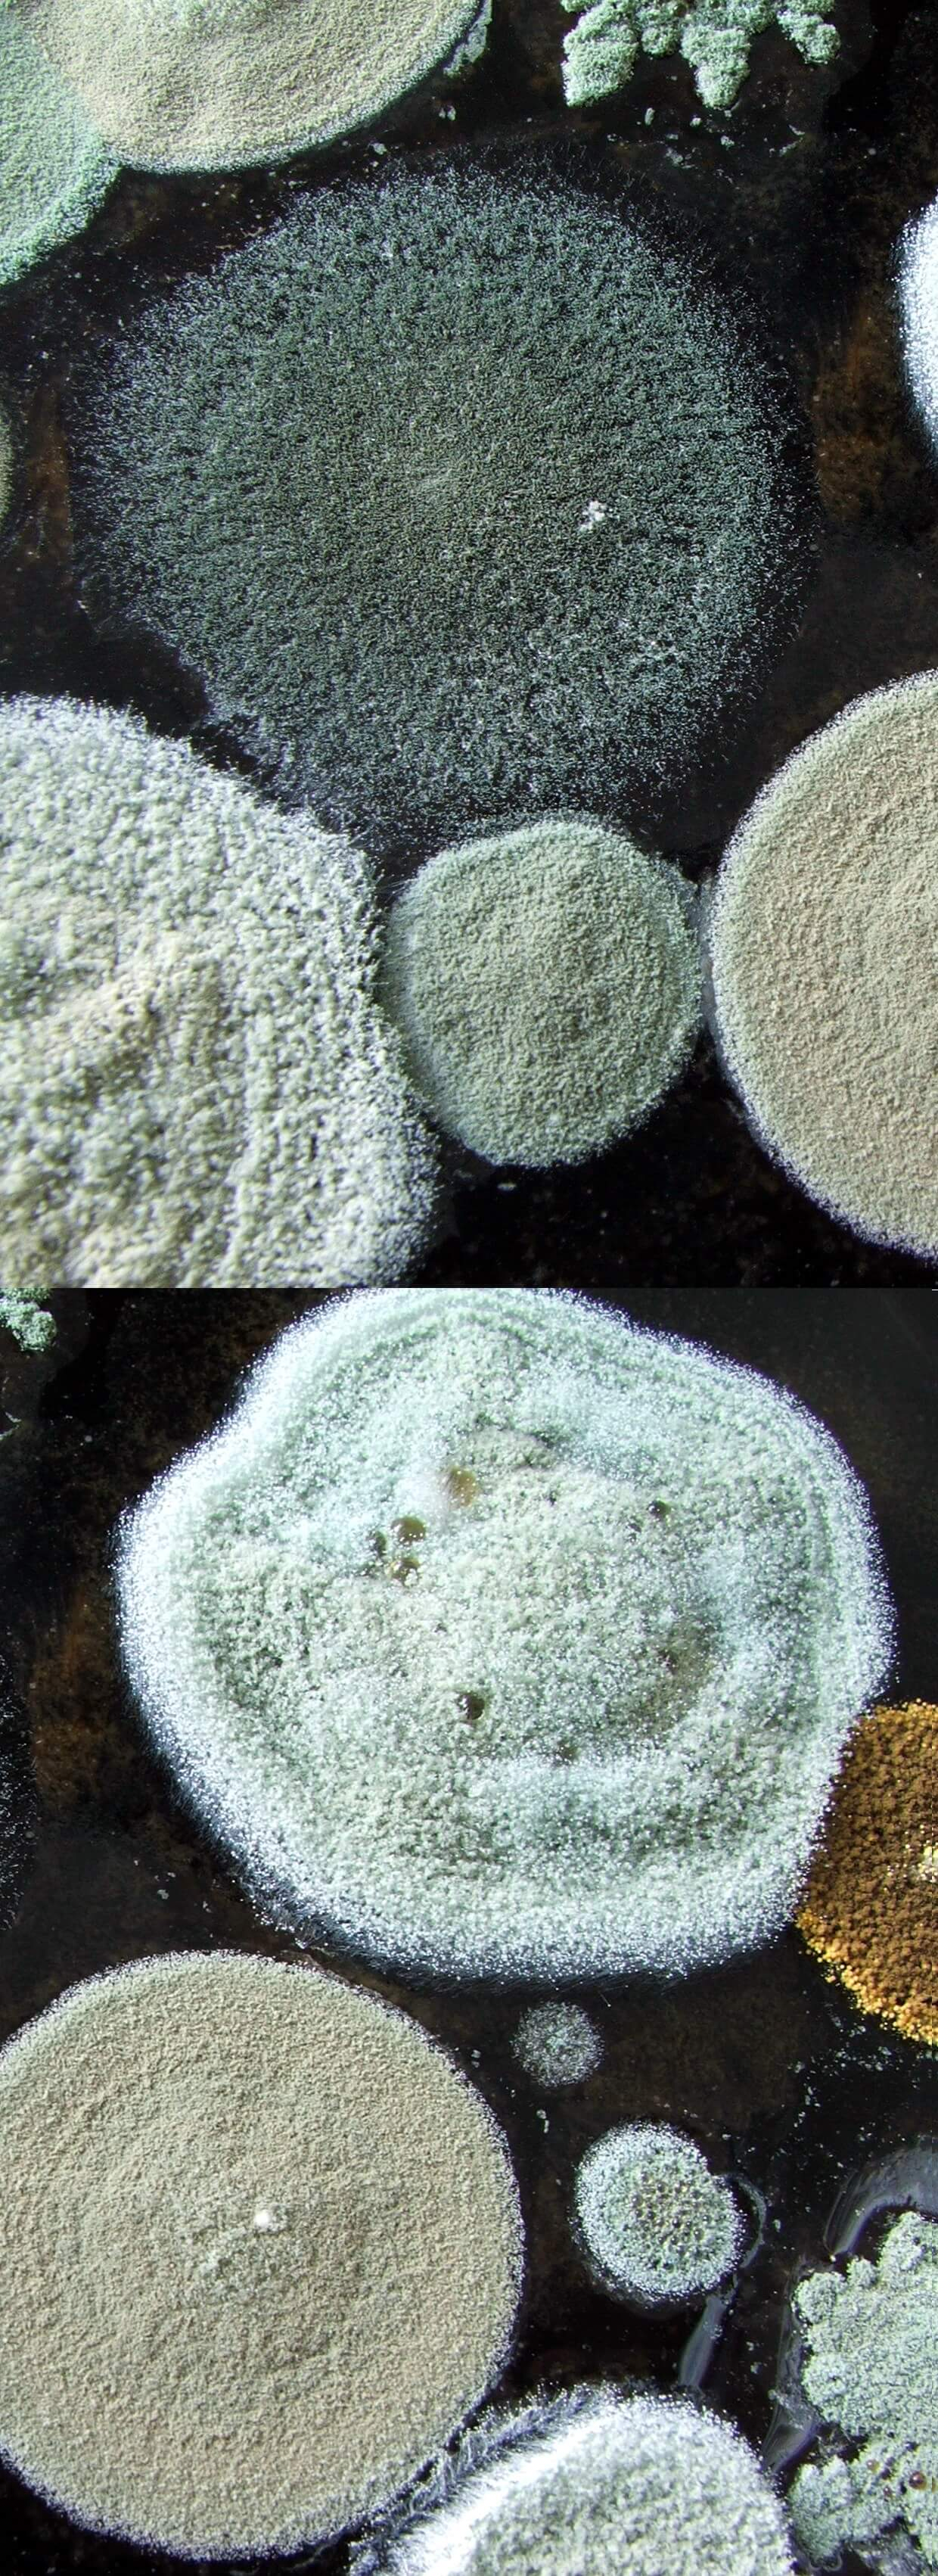 Different types of mold.